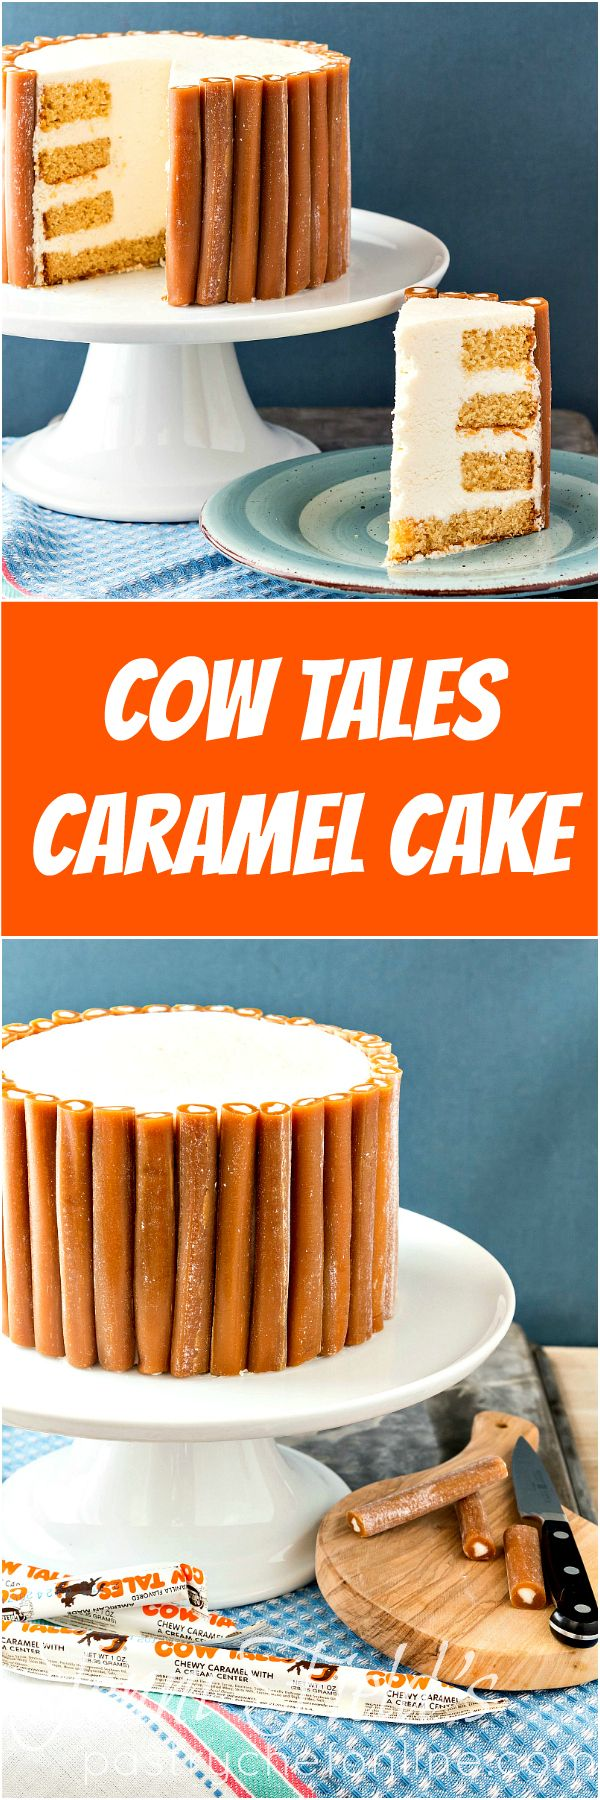 This Cow Tales® Caramel Cake is pure decadence. Four layers of caramel cake with cream between the layers and a core of frosting. Like one big Cow Tales candy surrounded by a bunch of little Cow Tales® candies. Enjoy in small pieces! | pastrychefonline.com